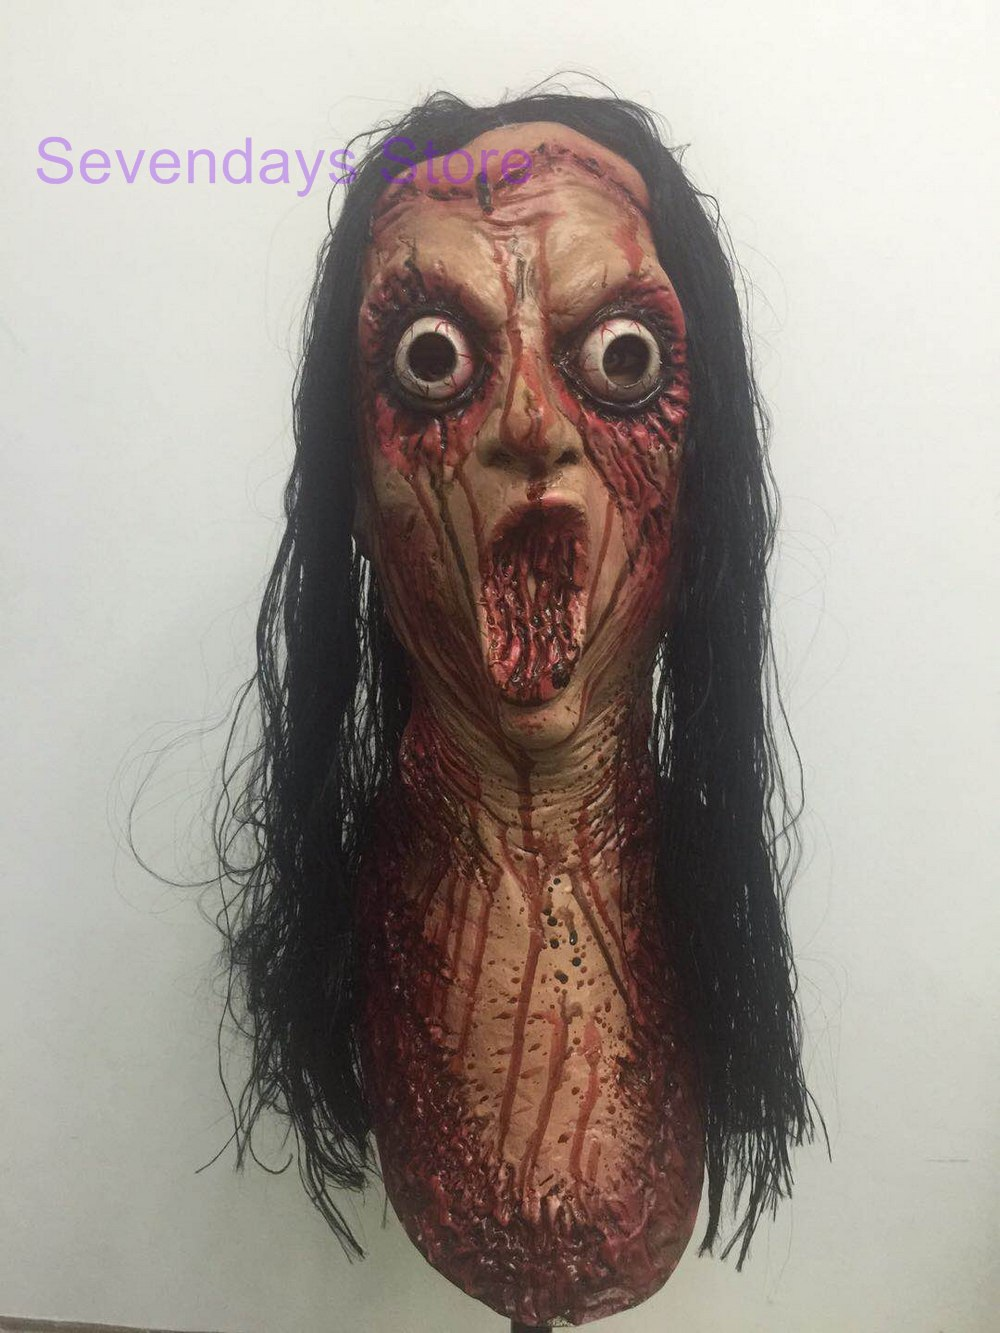 Cute Zombie Horrorable Face Rotting Zombie Christmas